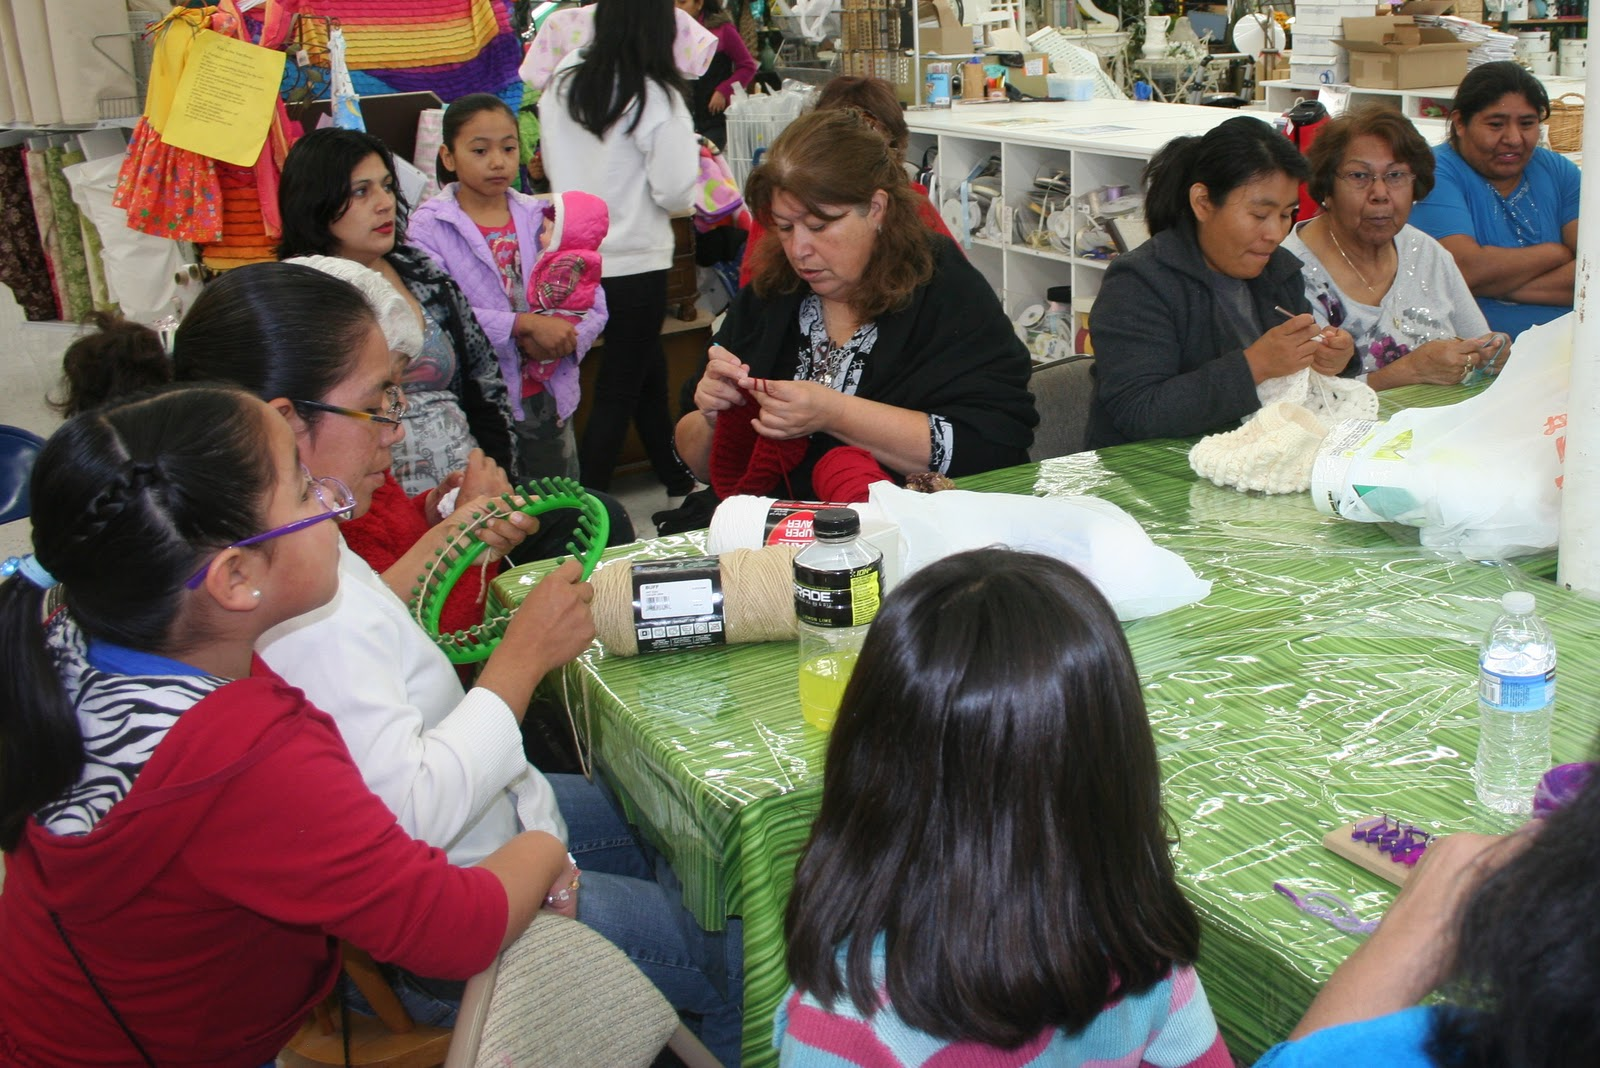 Crocheting Groups : Beverlys Santa Maria: The Knitting & Crochet Group